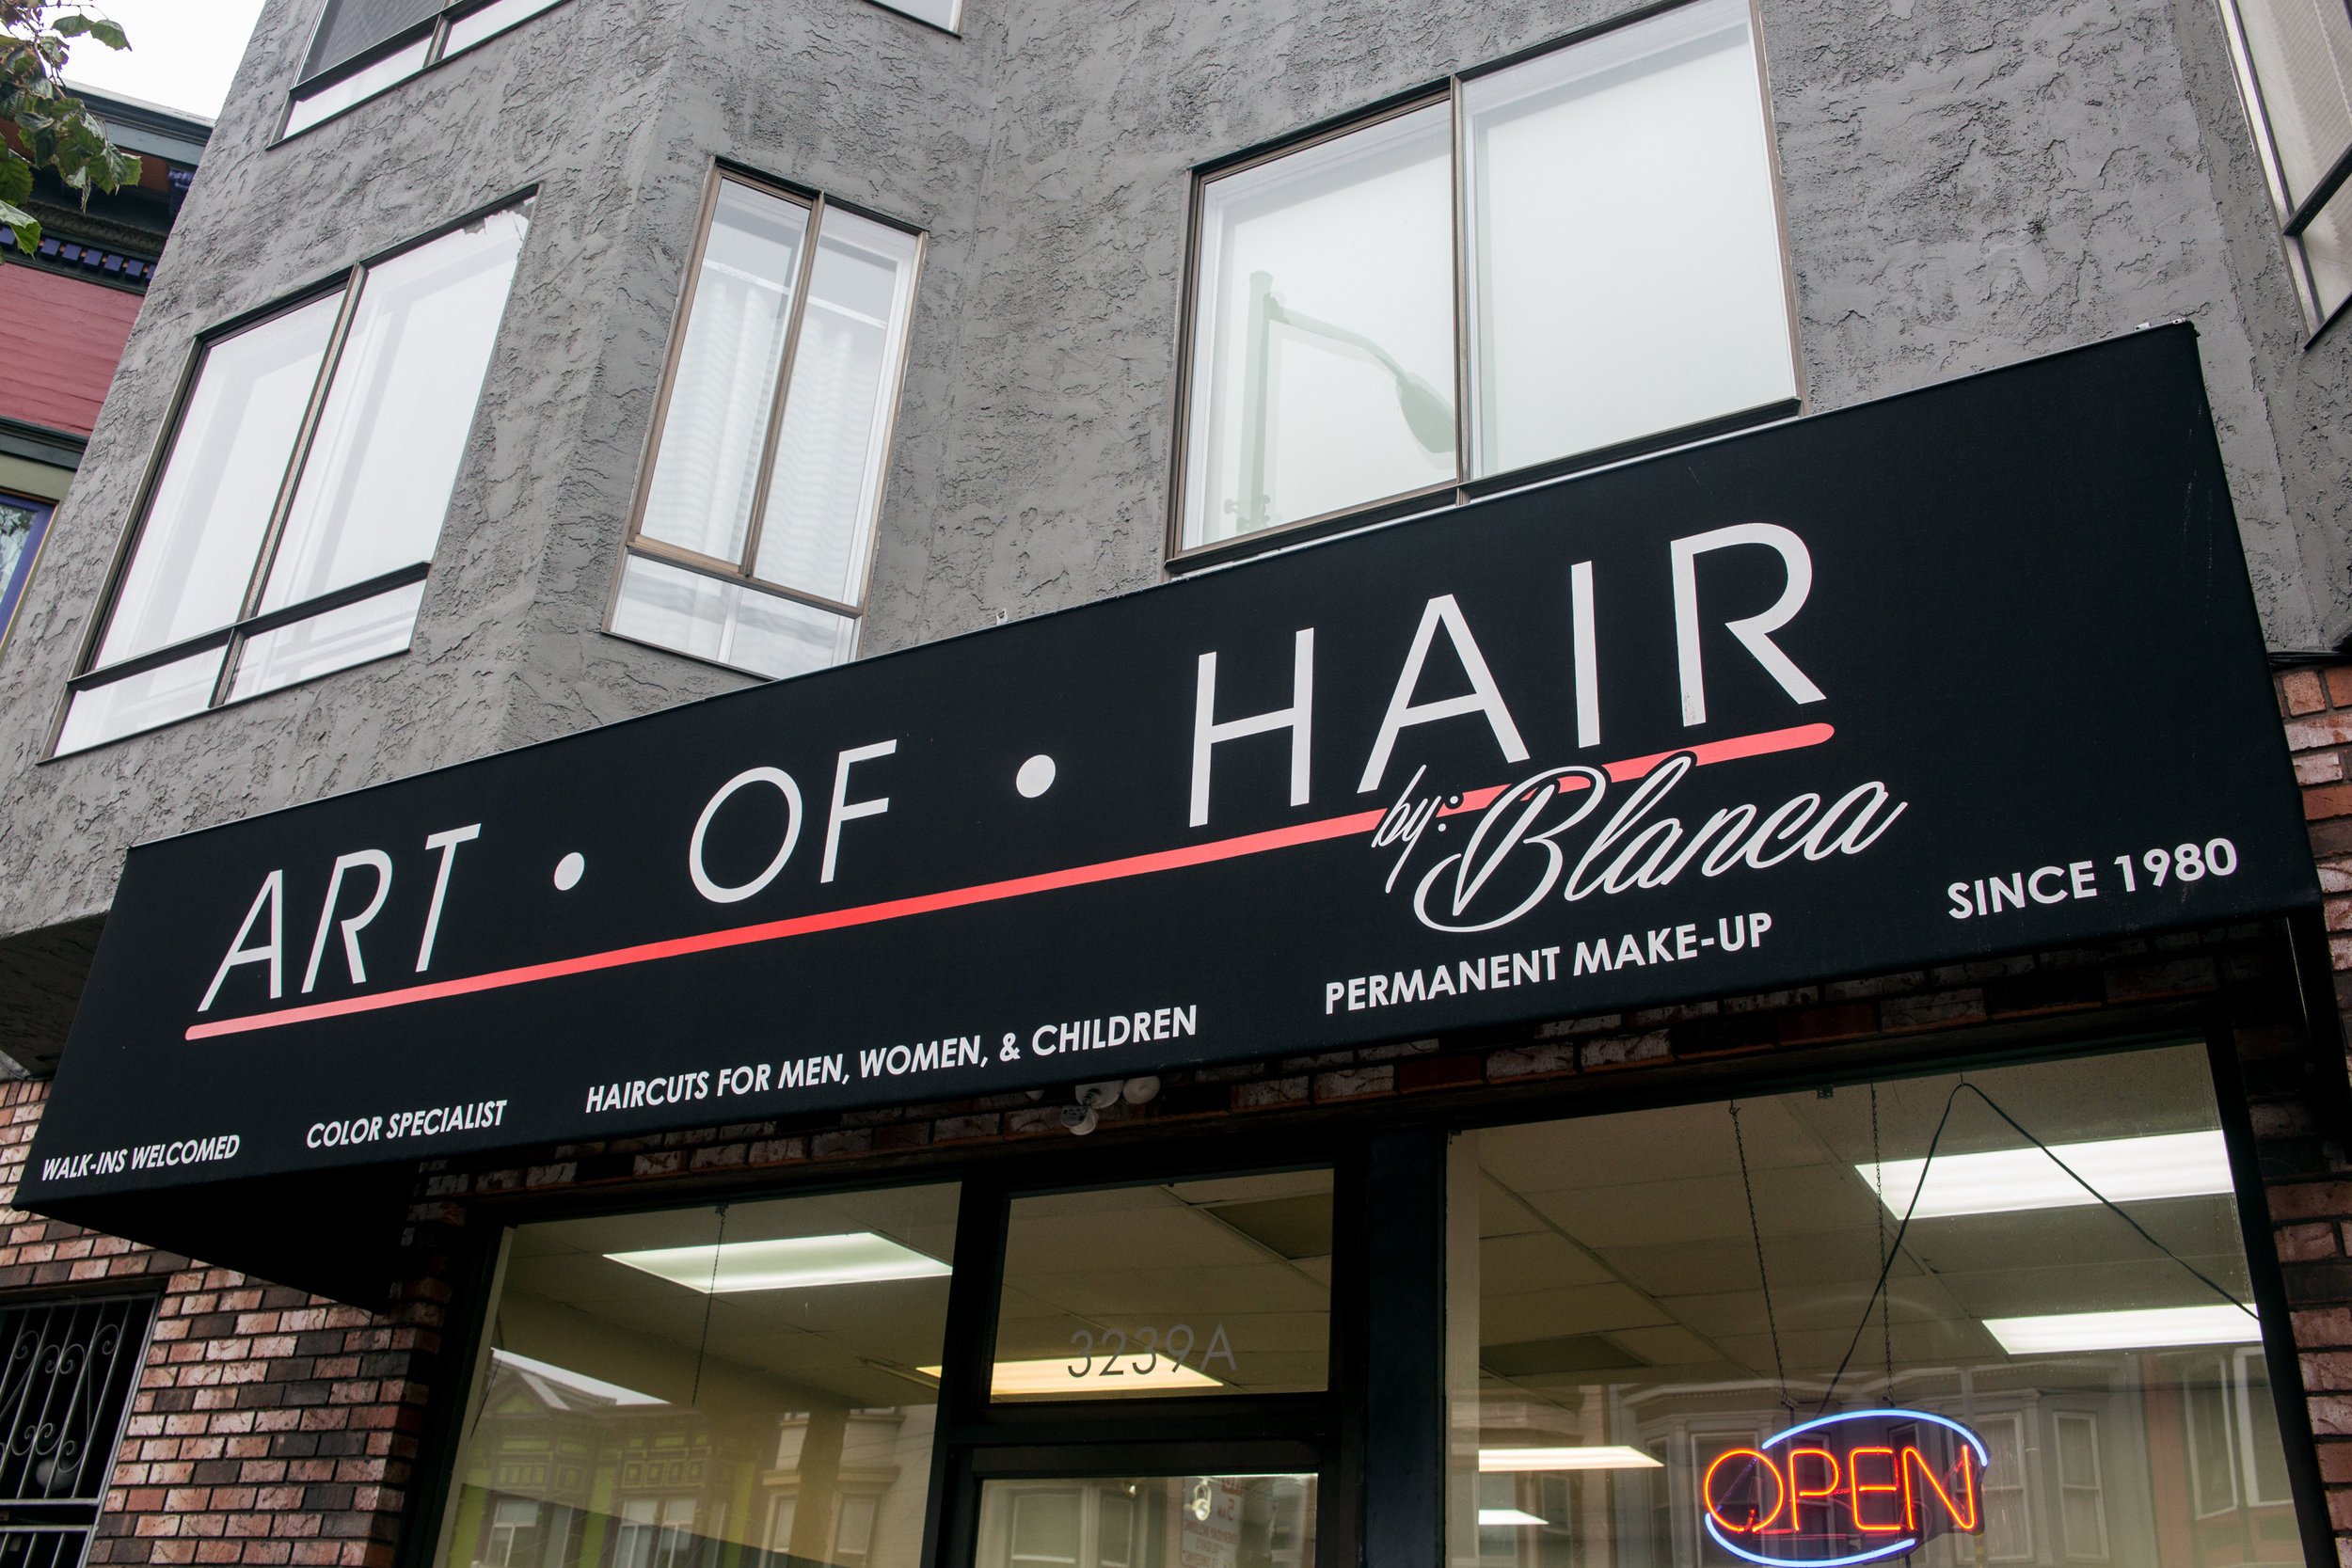 ART OF HAIR  - 3239 MISSION STREET - 415.826.7183